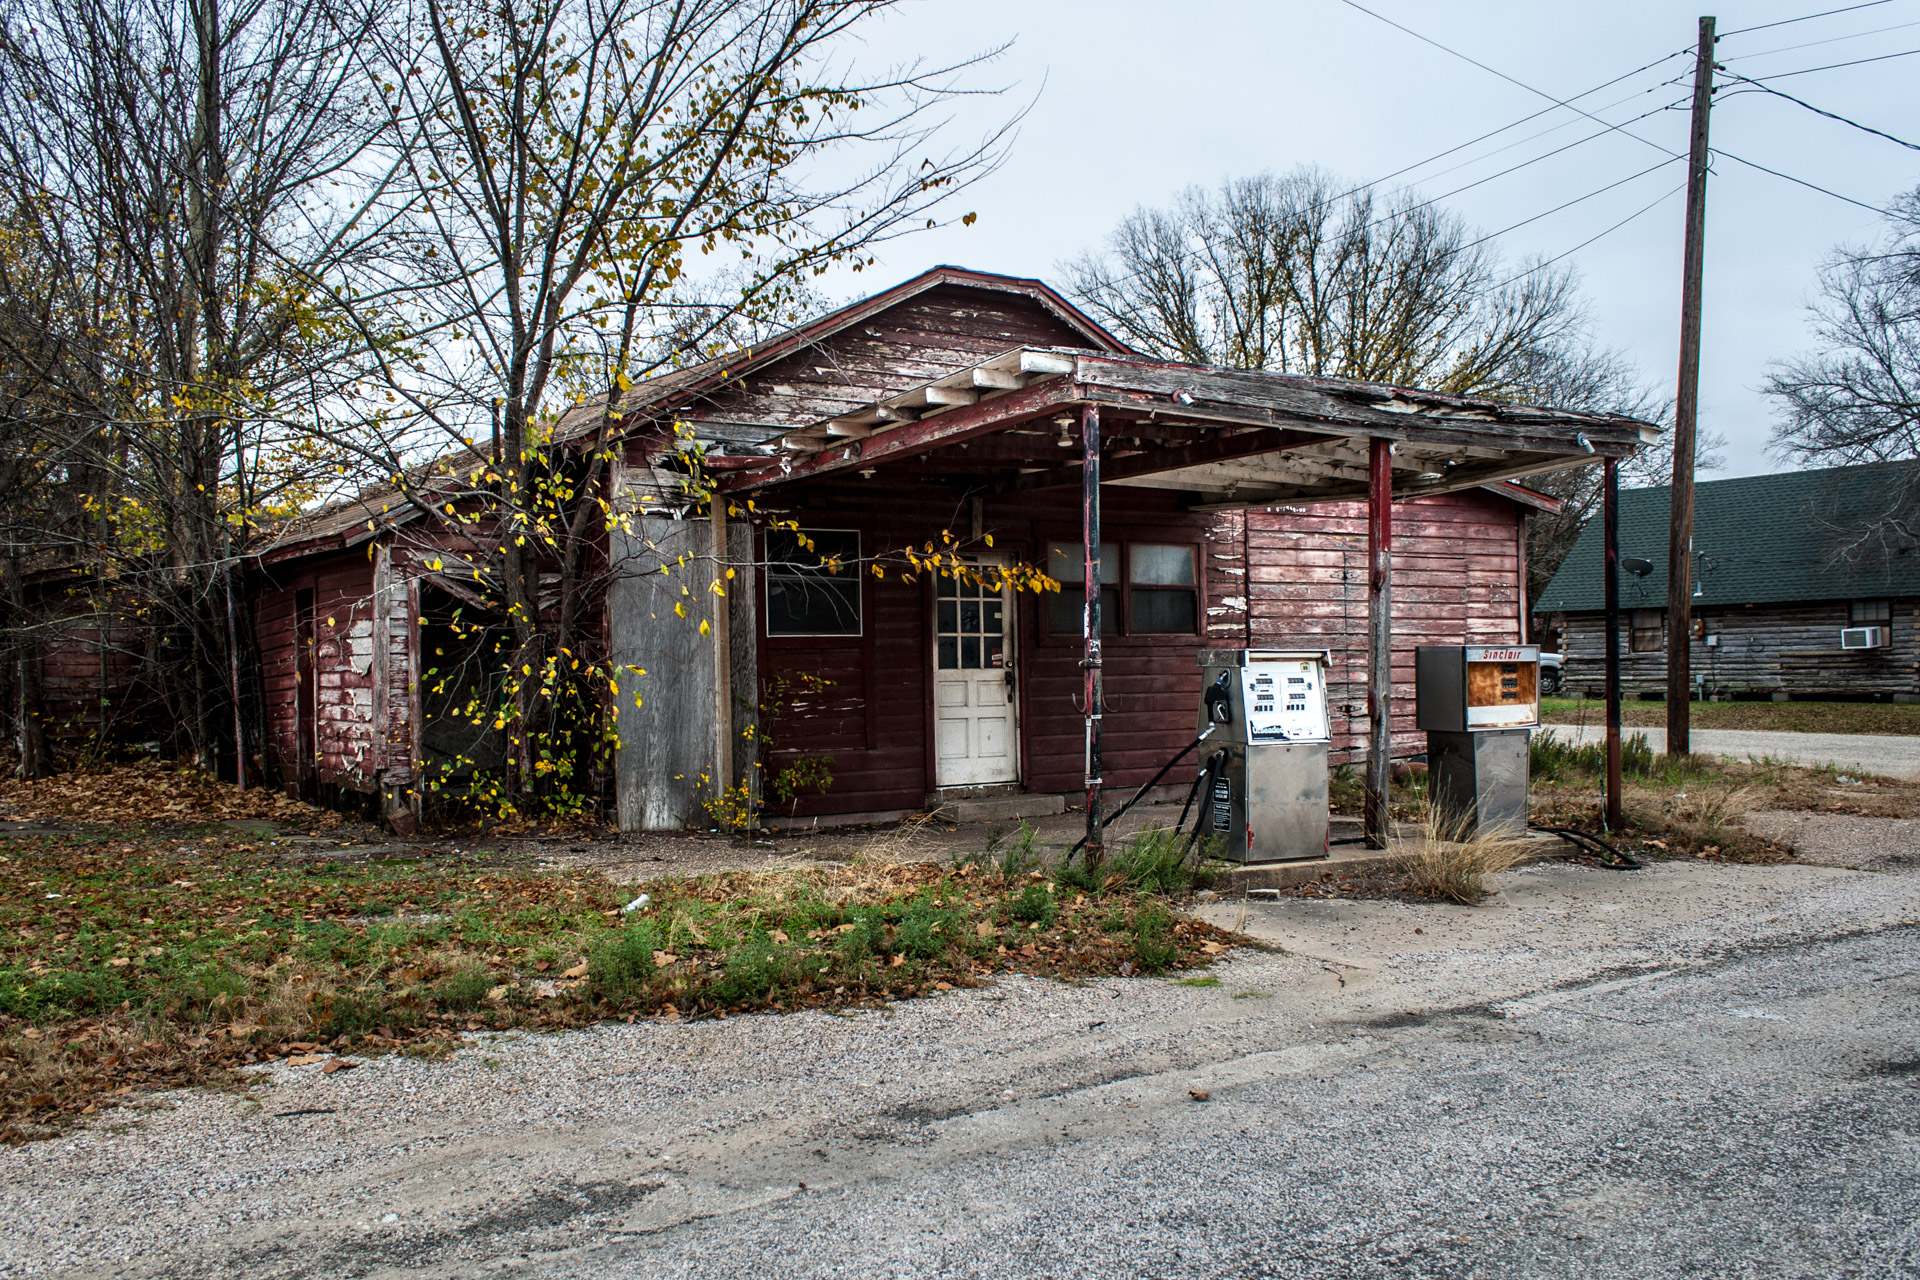 Kosse, Texas - Old Gas Pumps Gas Station